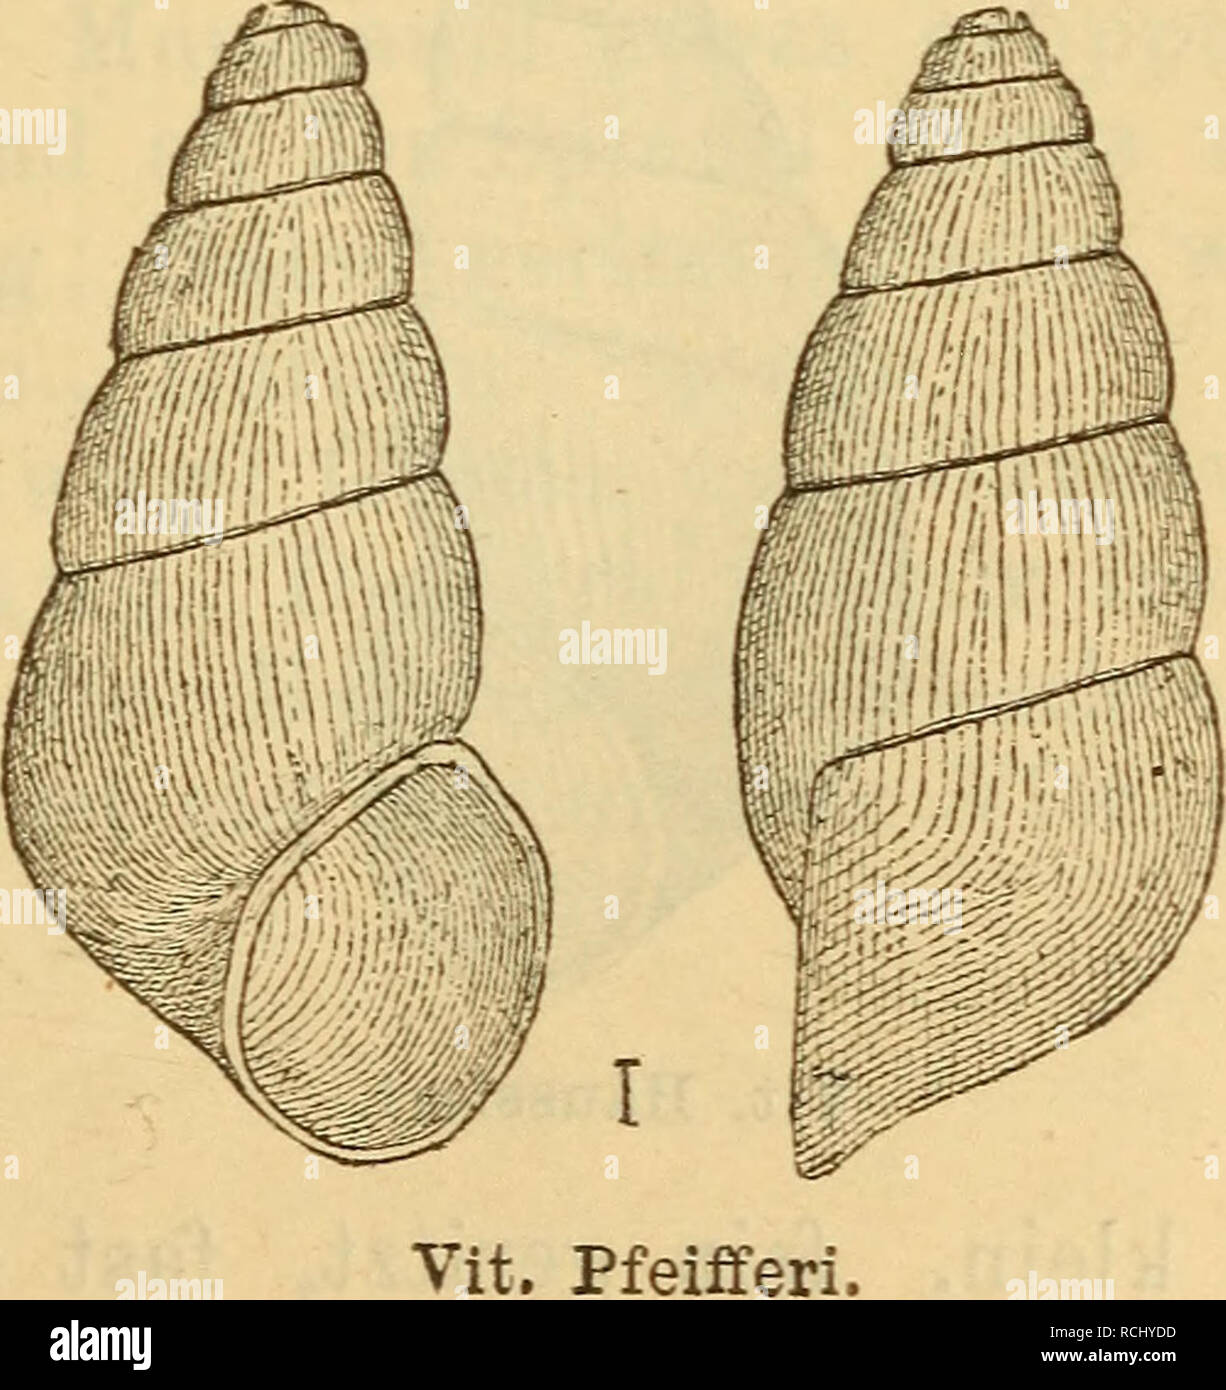 . Die Mollusken-Fauna Mitteleuropa's. Mollusks. Vit. gracilis. Höhe 1,9 mm., Durchm. 0,6 mm. Verbreitung: In Krain im Auswurfe der Bäche. Bemerkung. Die Art ist sehr eigenthümlich und von allen übrigen des Genus leicht zu unterscheiden. 6. Vitrella Pfeifferi n. sp. Thier: nicht beschrieben. Fig. 423,. Please note that these images are extracted from scanned page images that may have been digitally enhanced for readability - coloration and appearance of these illustrations may not perfectly resemble the original work.. Clessin, Stephan, 1833-1911. Nürnberg : Bauer & Raspe Stock Photo